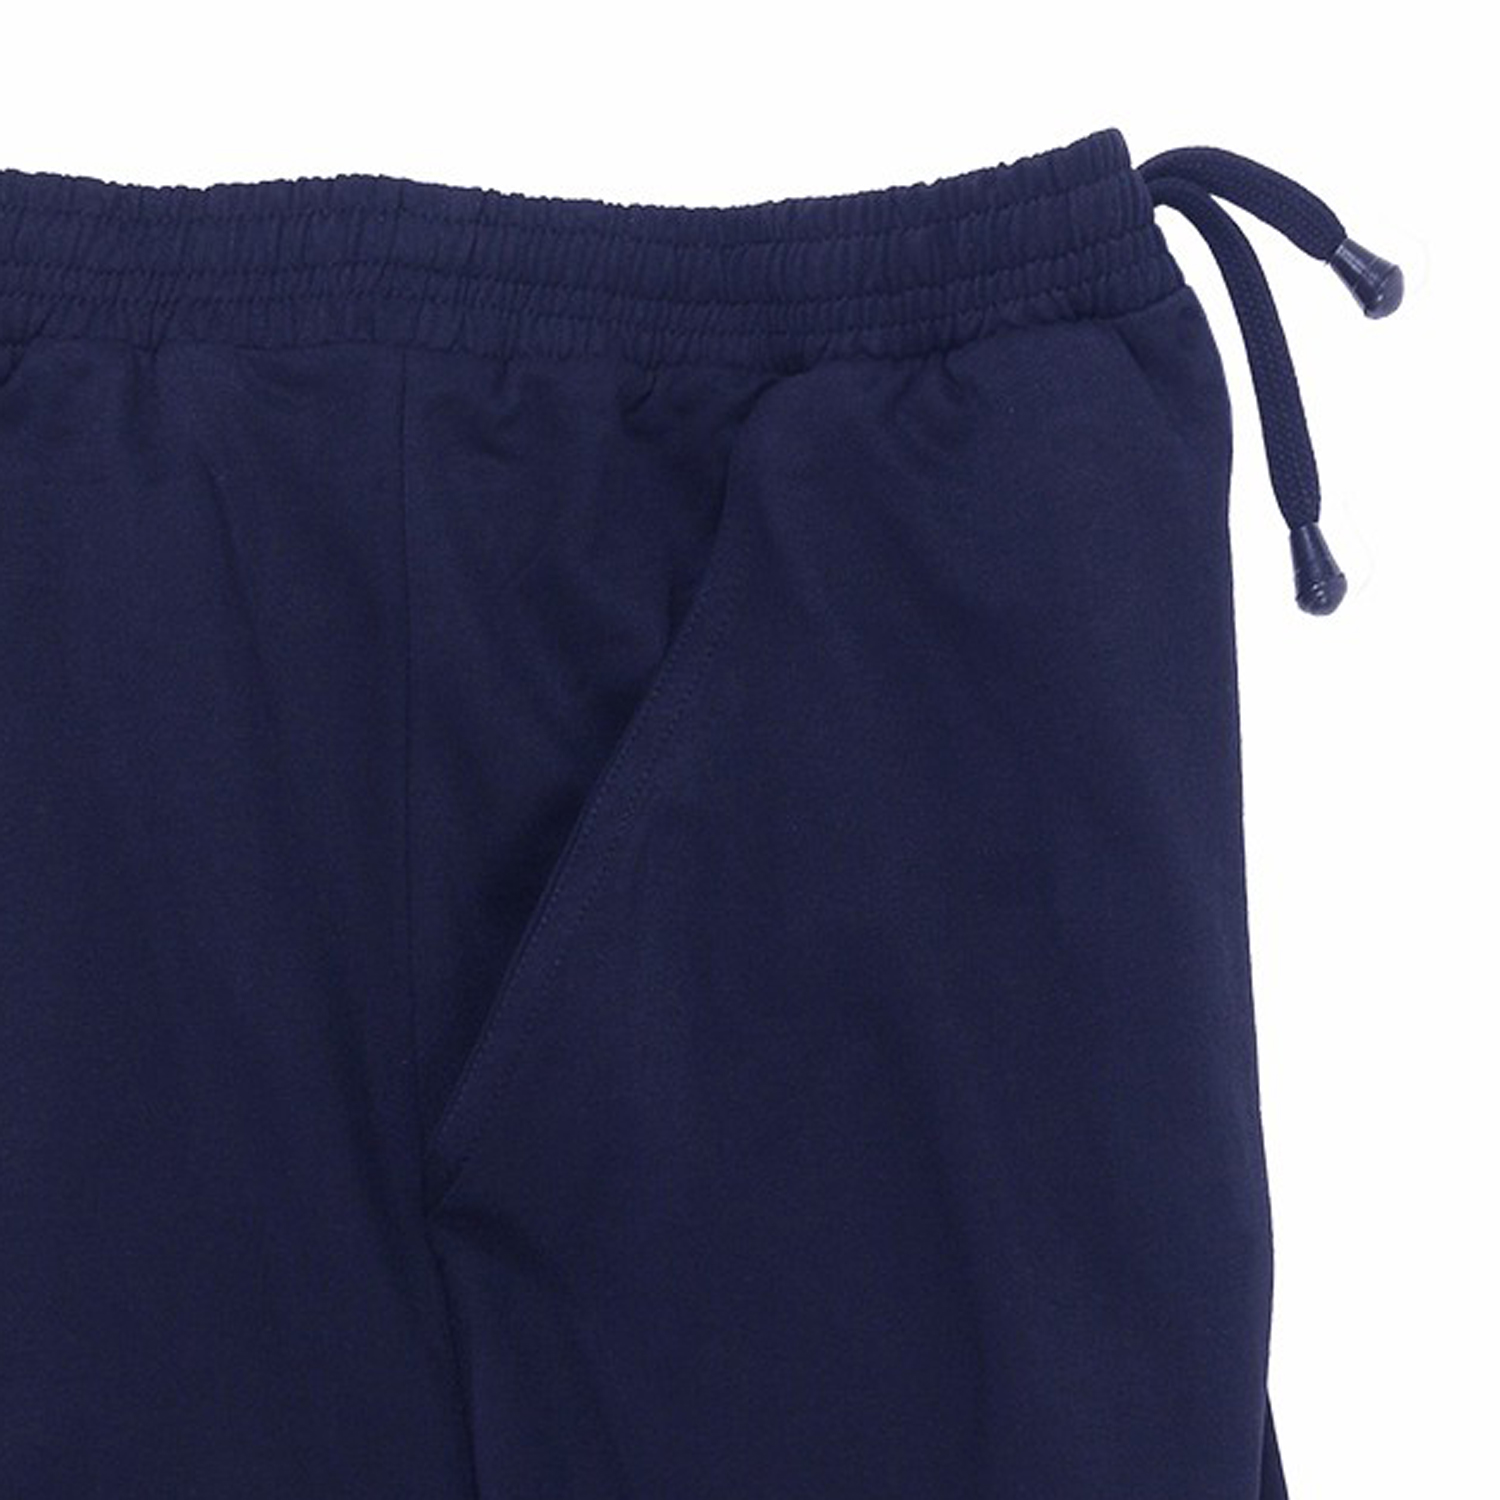 Detail Image to Blue short jogging trousers up to 14XL by Adamo